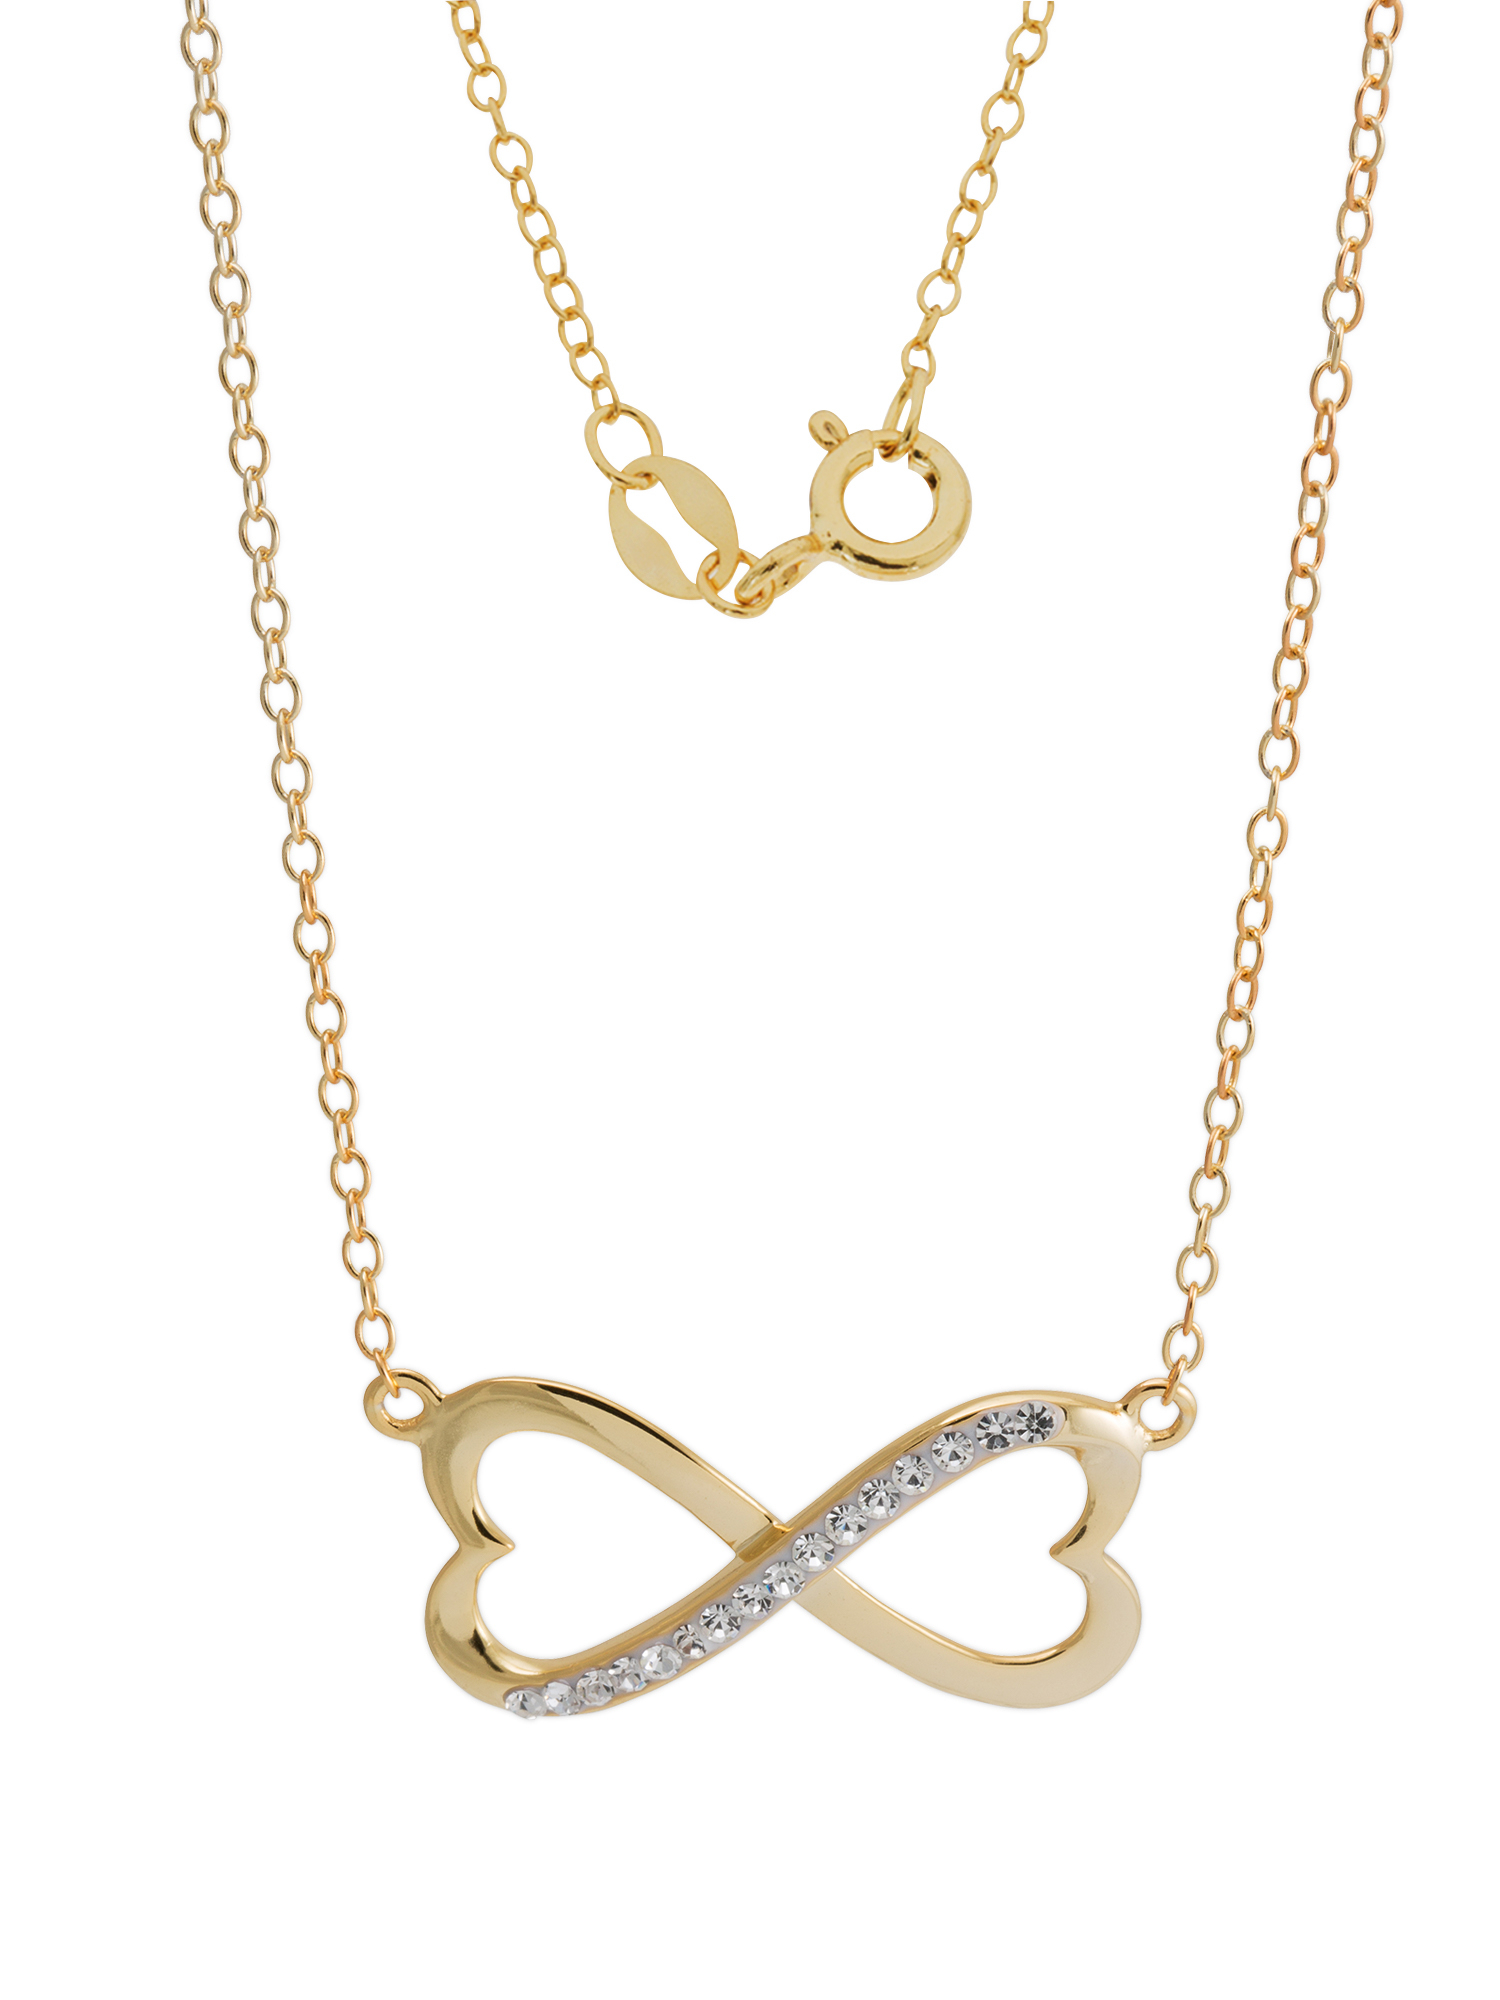 18kt Gold Over Silver Clear Crystal Infinity/heart Necklace Pertaining To 2019 Sparkling Infinity Locket Element Necklaces (View 9 of 25)